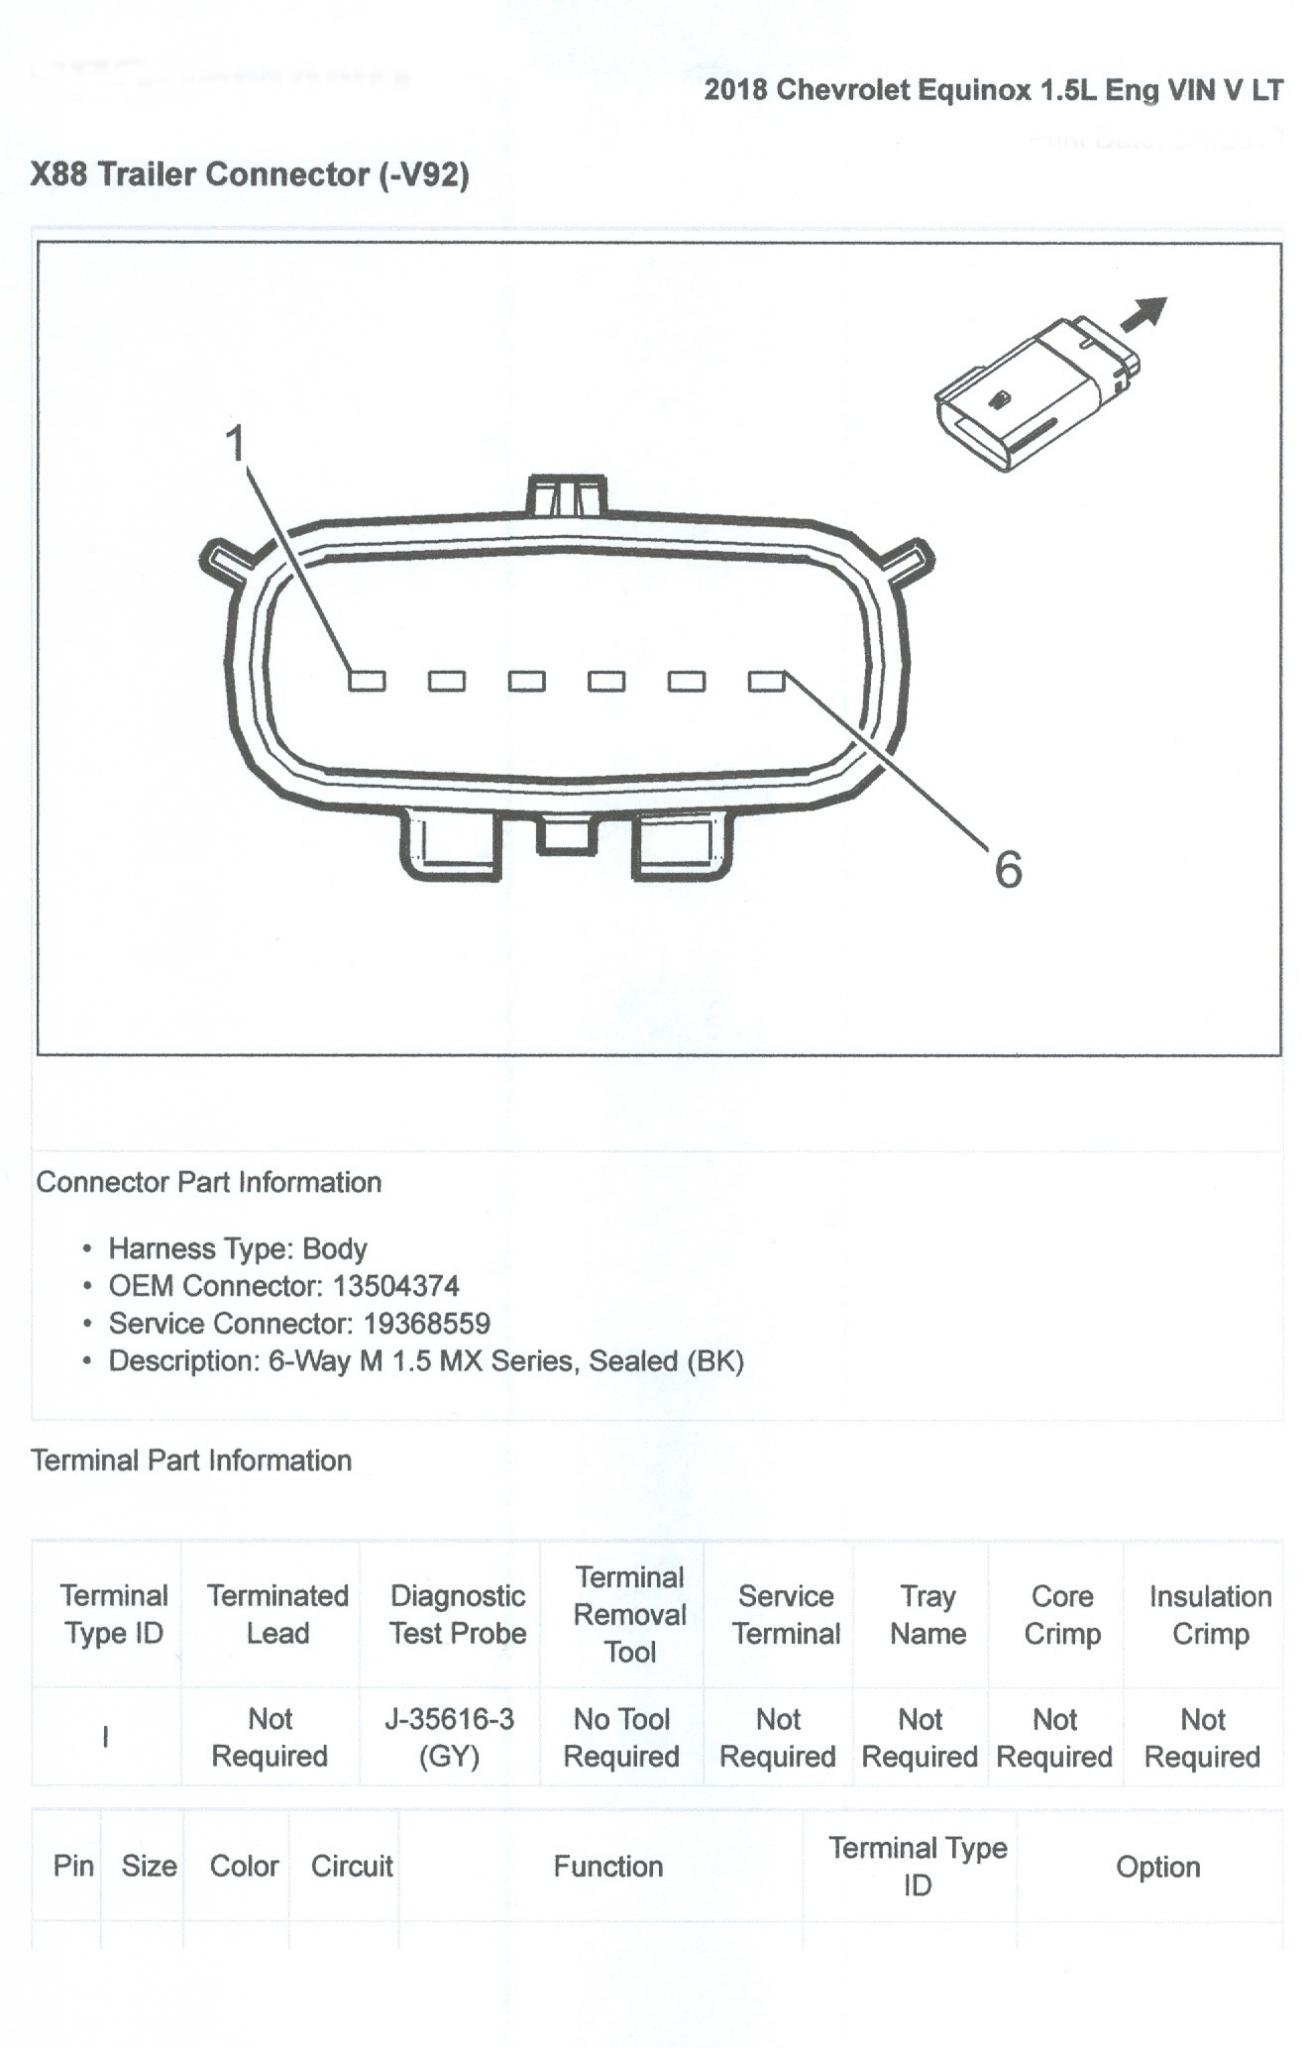 Wiring Diagram For 2017 Chevy Equinox